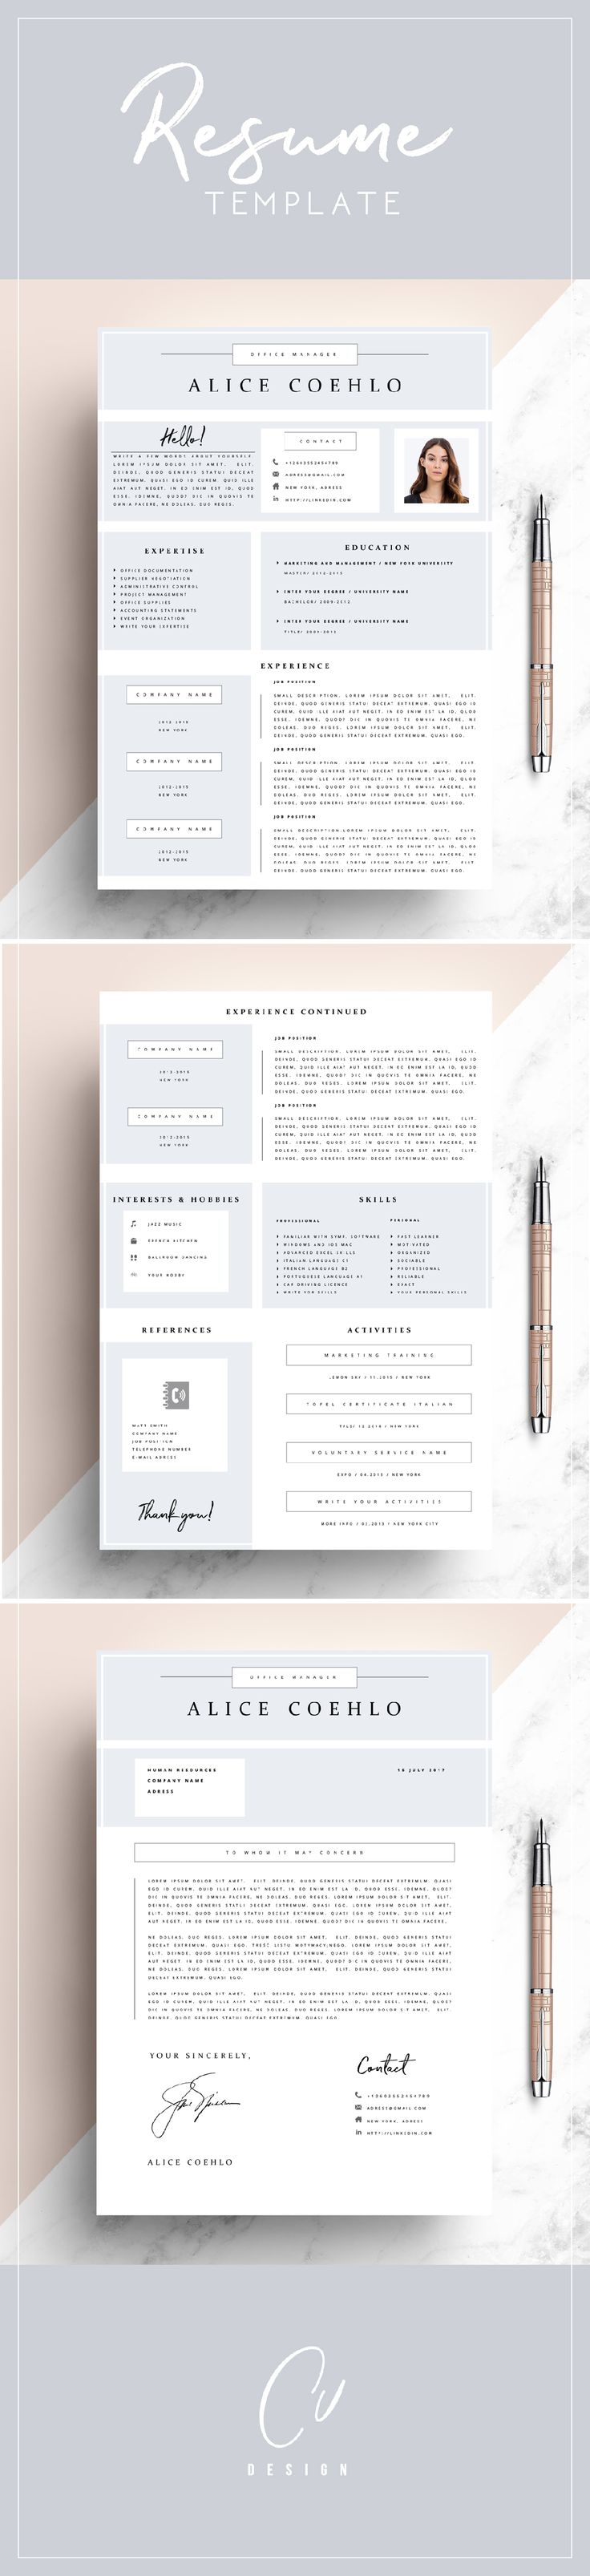 Best Creative Resume By Cvdesign Images On